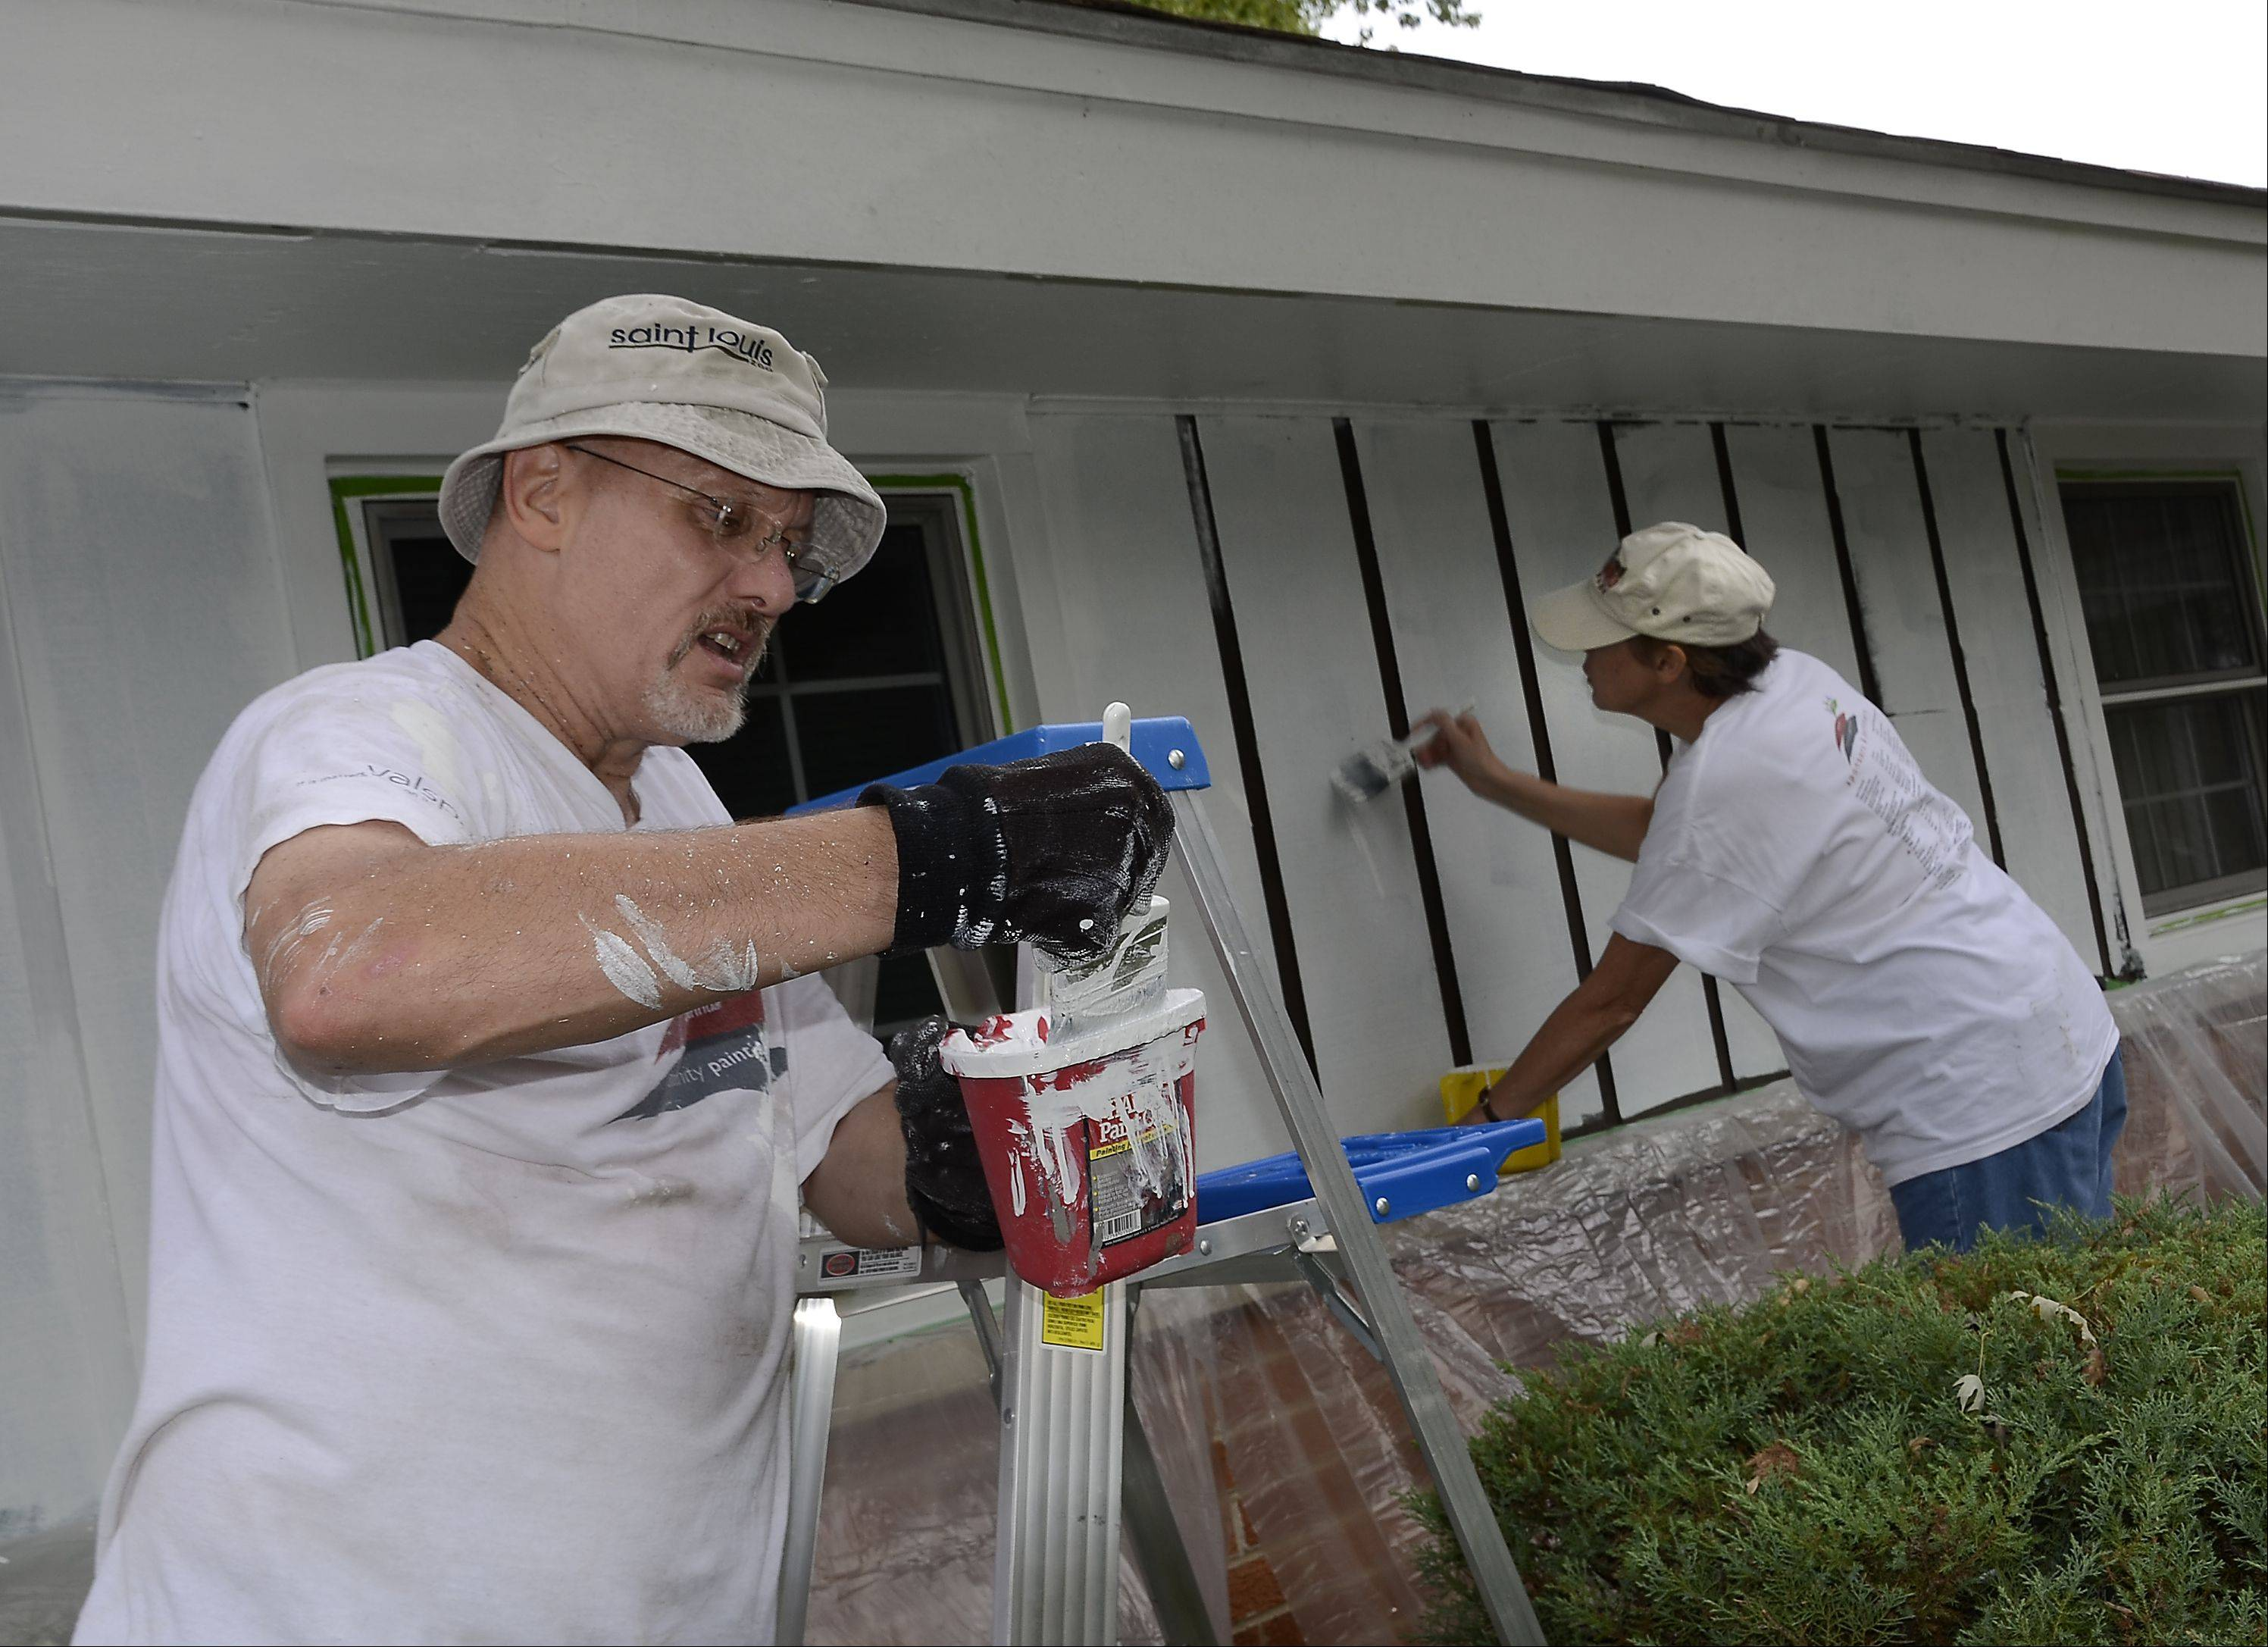 Husband and wife Steve and Nancy Middleton of Team Zurich paint Alice Barmann's house on Friday. Nancy works for Zurich Insurance, which formed a team of volunteers for the Community Paint-a-thon.